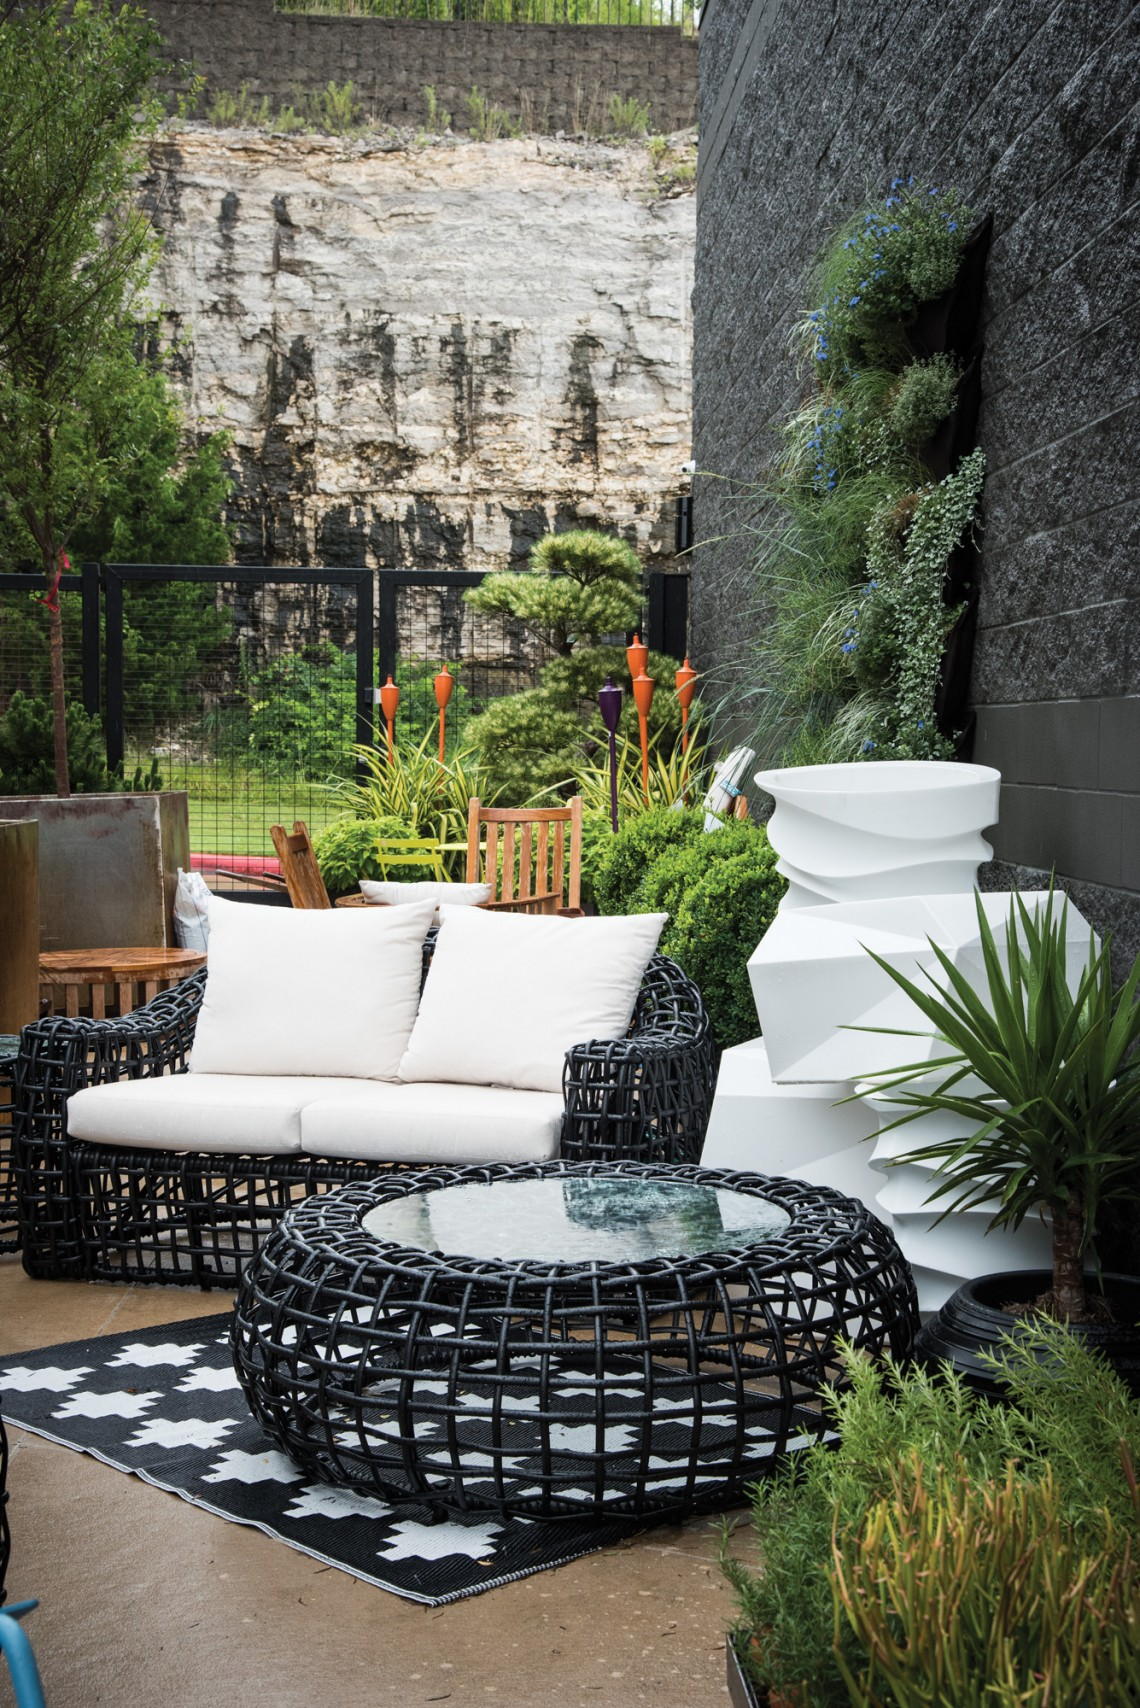 Garden Living in Fayetteville stocks everything you need to feed your gardening hobby, as well as beautiful patio furniture on which to sit while you enjoy the fruits of your labor